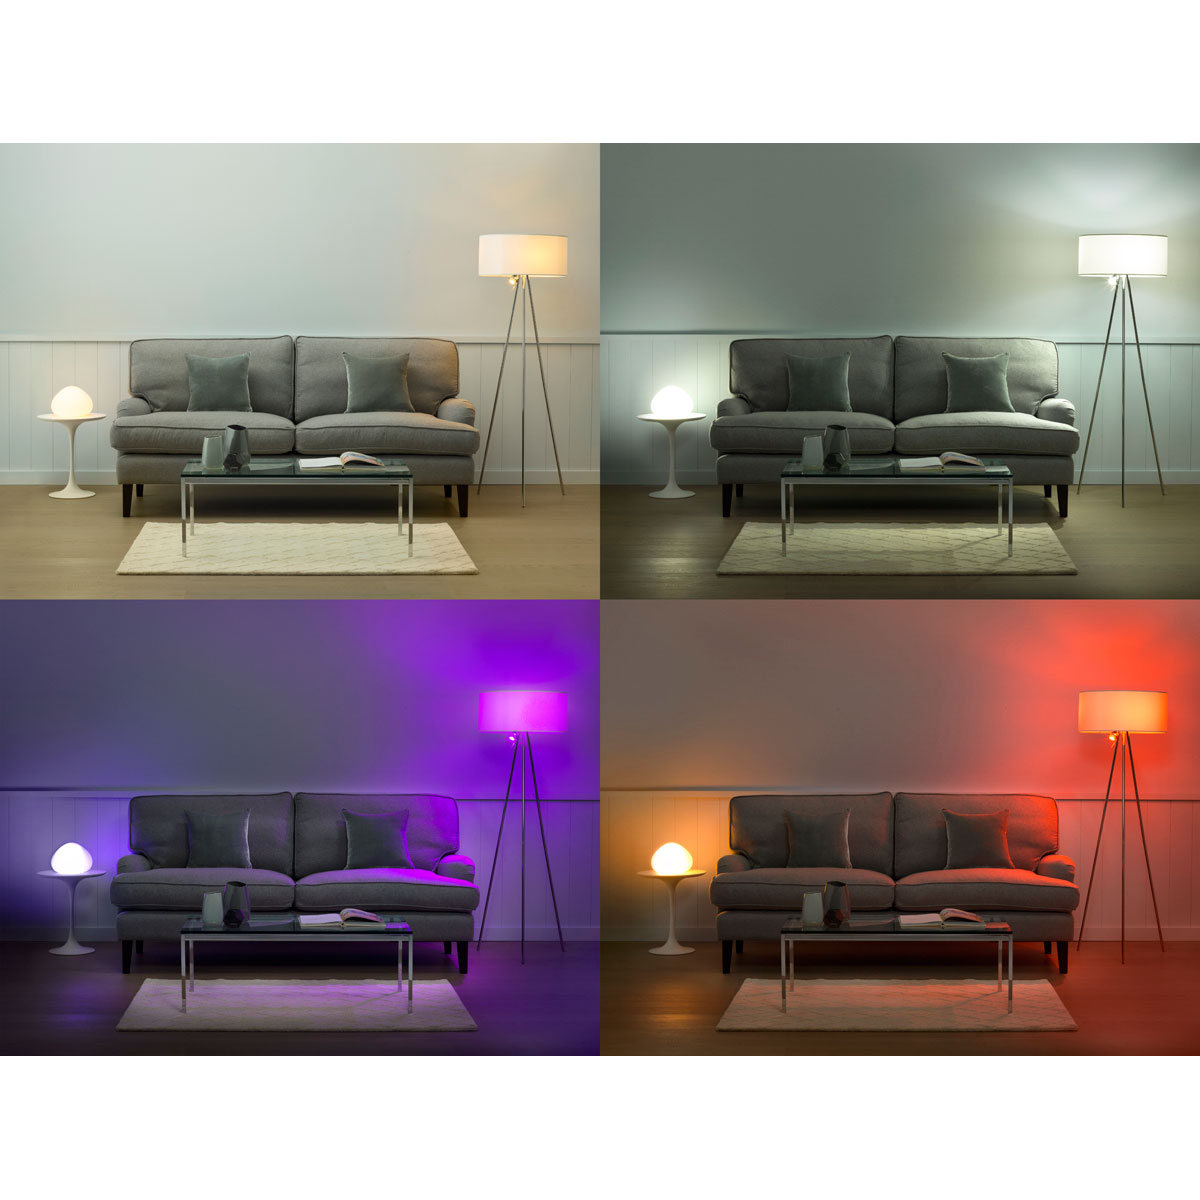 philips hue lamp starterset 3 lampen met bridge. Black Bedroom Furniture Sets. Home Design Ideas